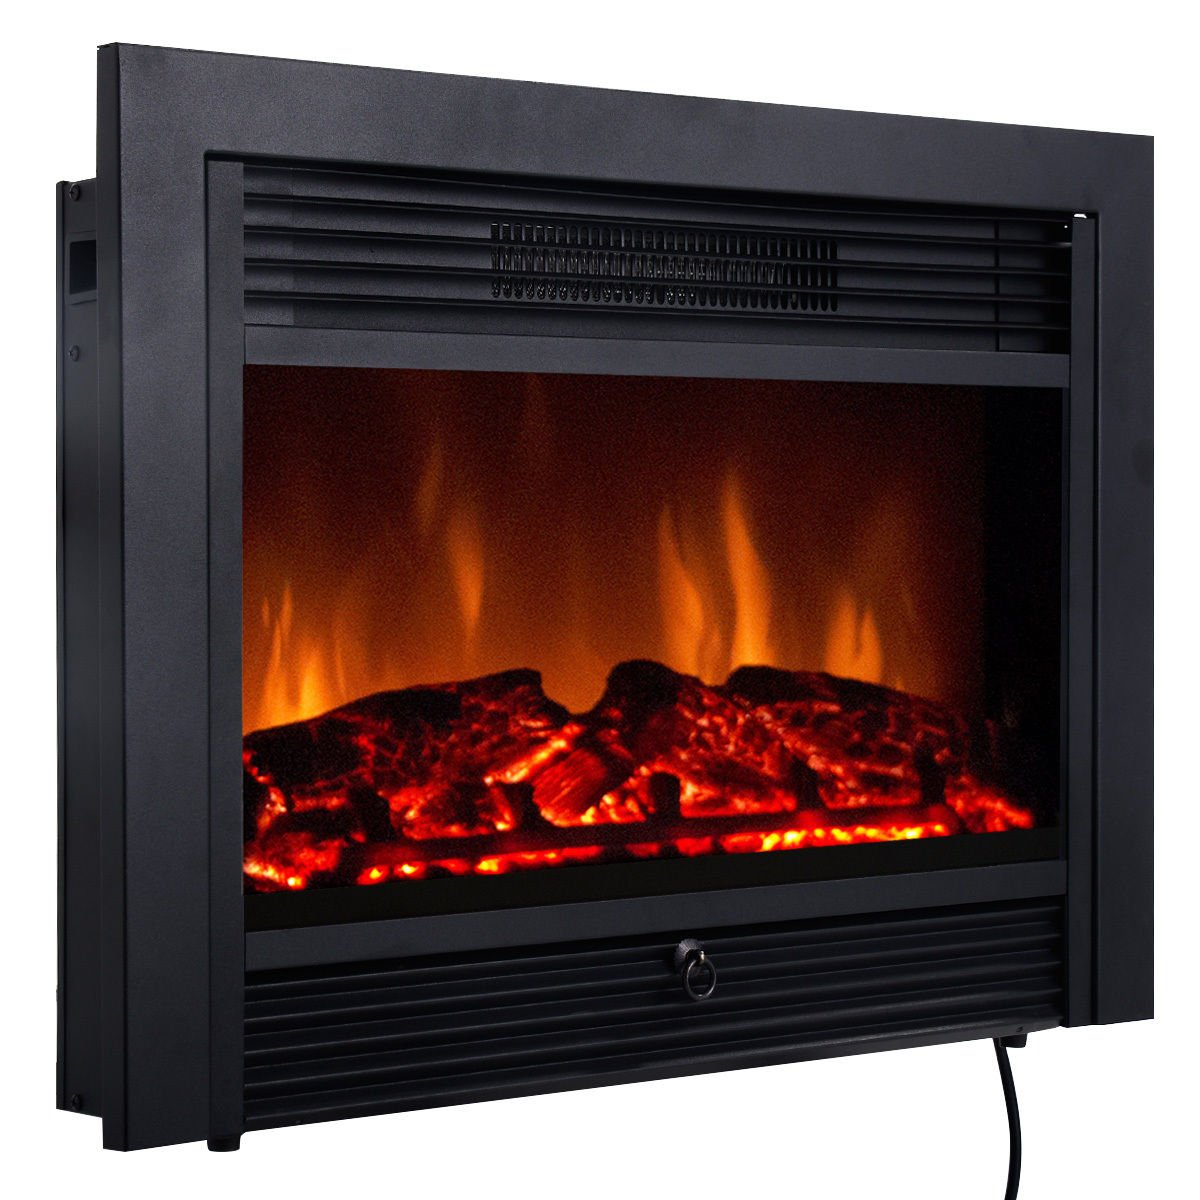 28-5-034-Fireplace-Electric-Embedded-Insert-Heater-Glass-Log-Flame-Remote-Home